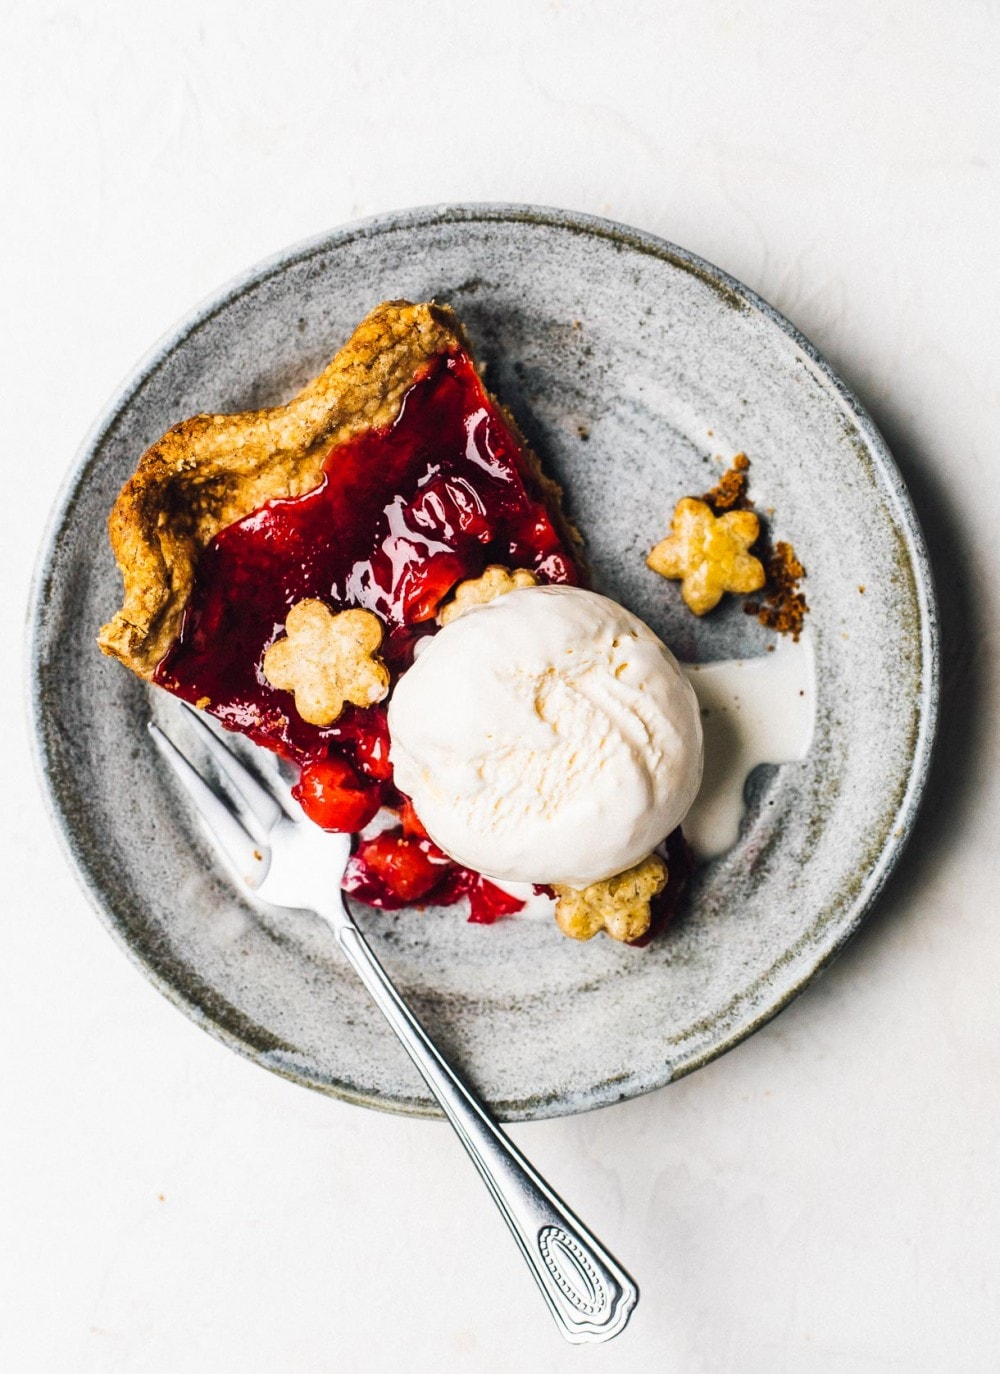 tart cherry pie on a plate with vanilla ice cream and a fork